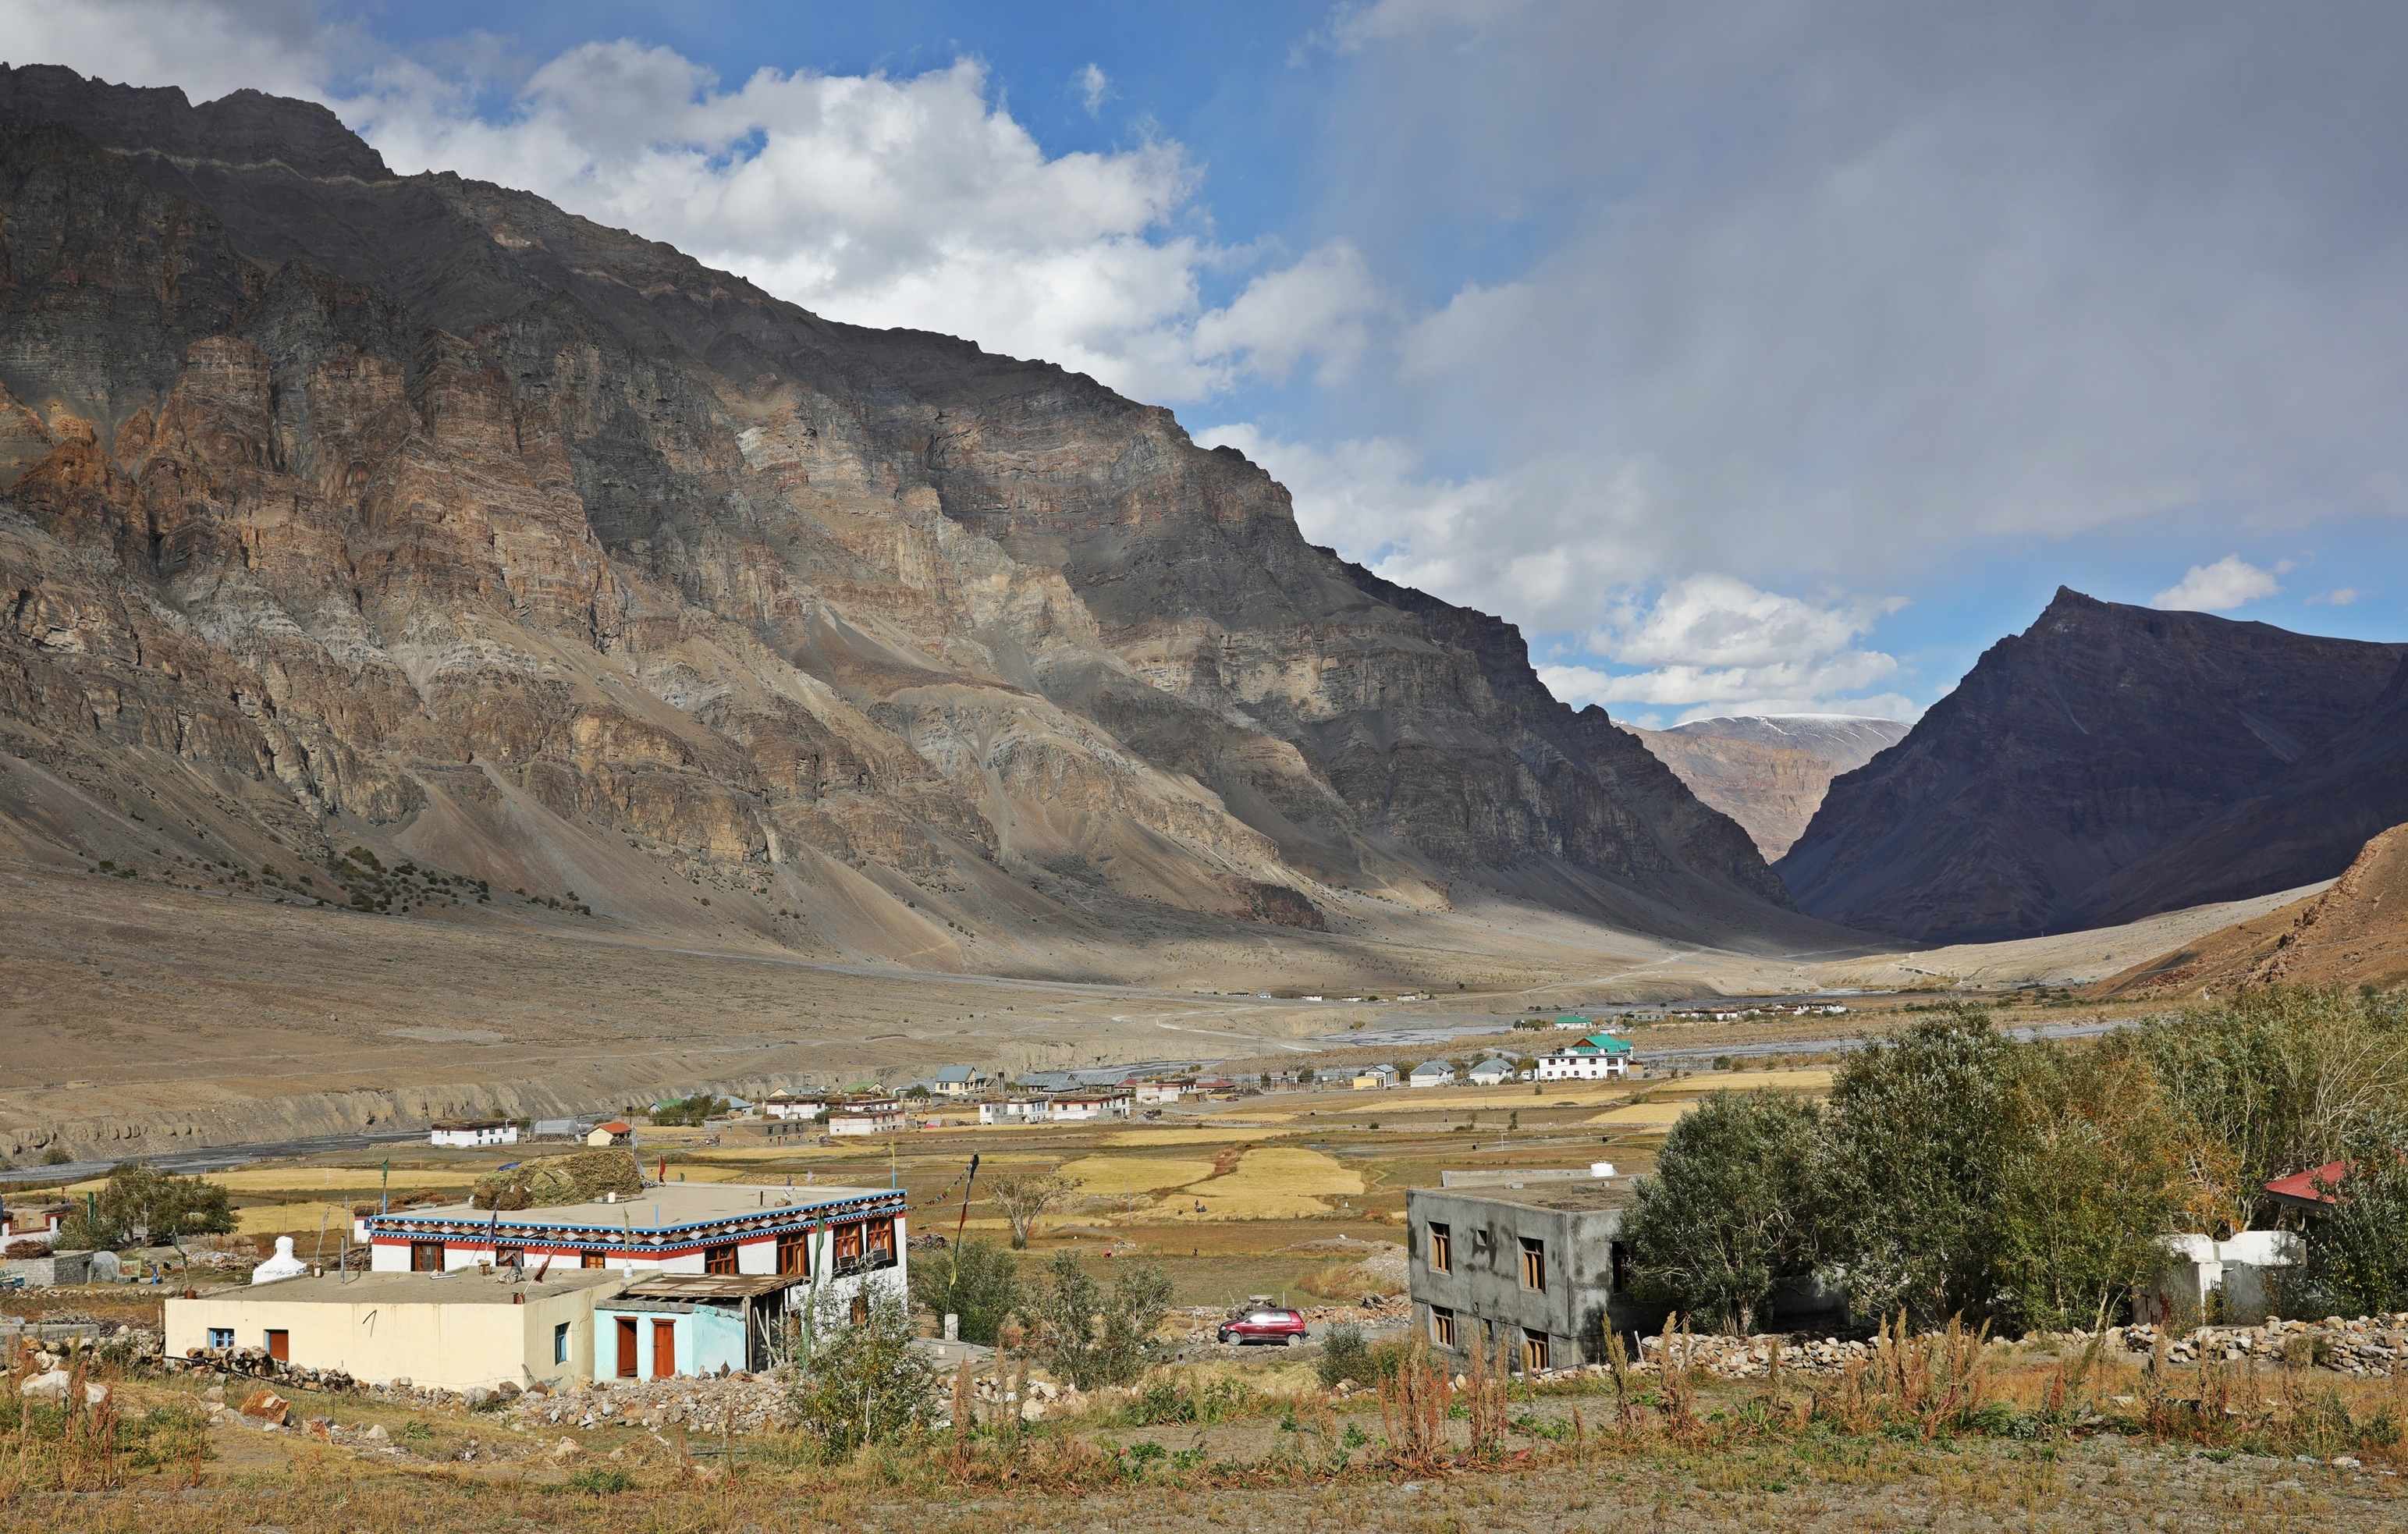 Entering Spiti Valley